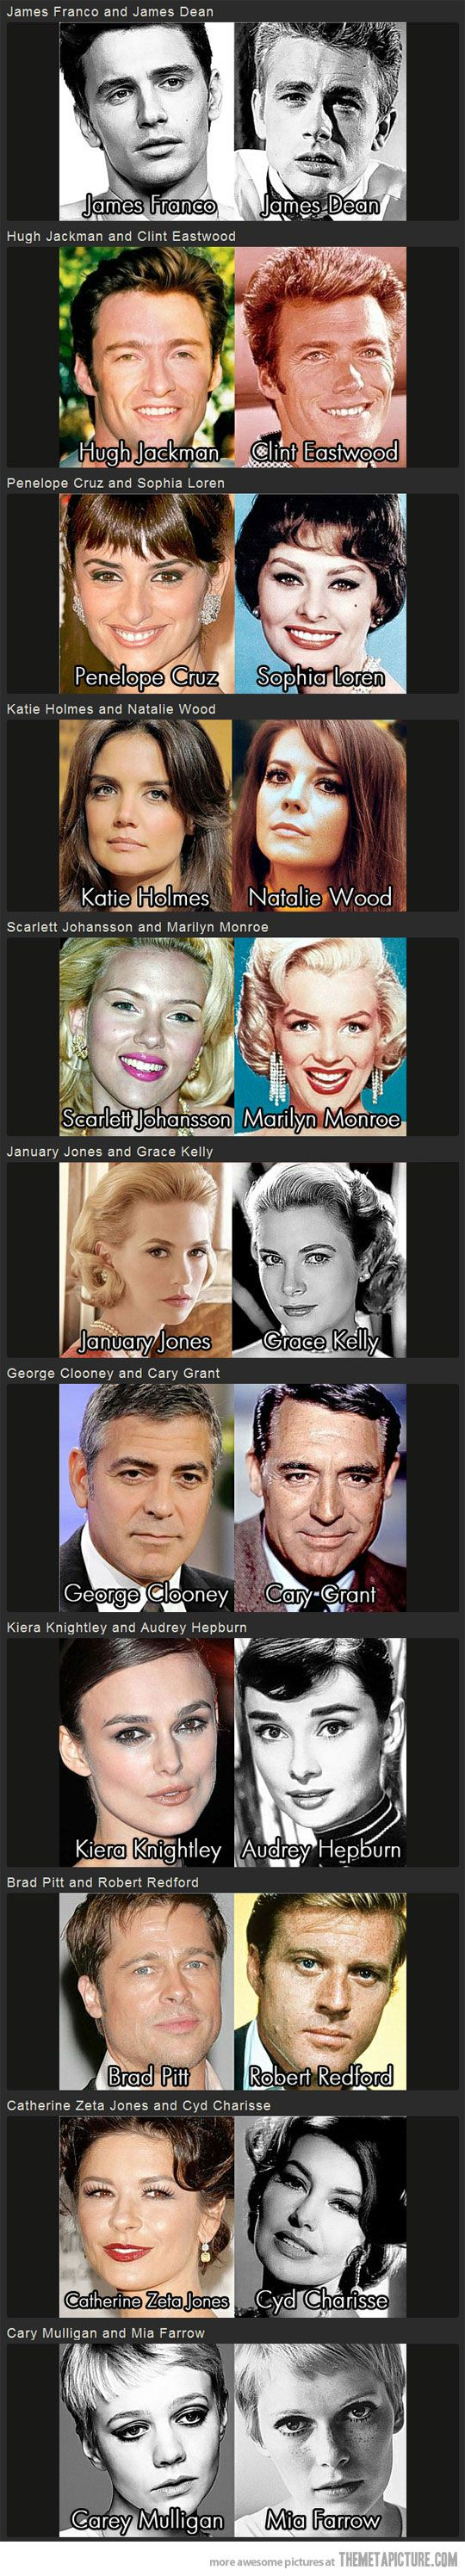 Today's movie stars and their classic film lookalikes. I think Catherine zeta jones and Penelope Cruz should be switched: